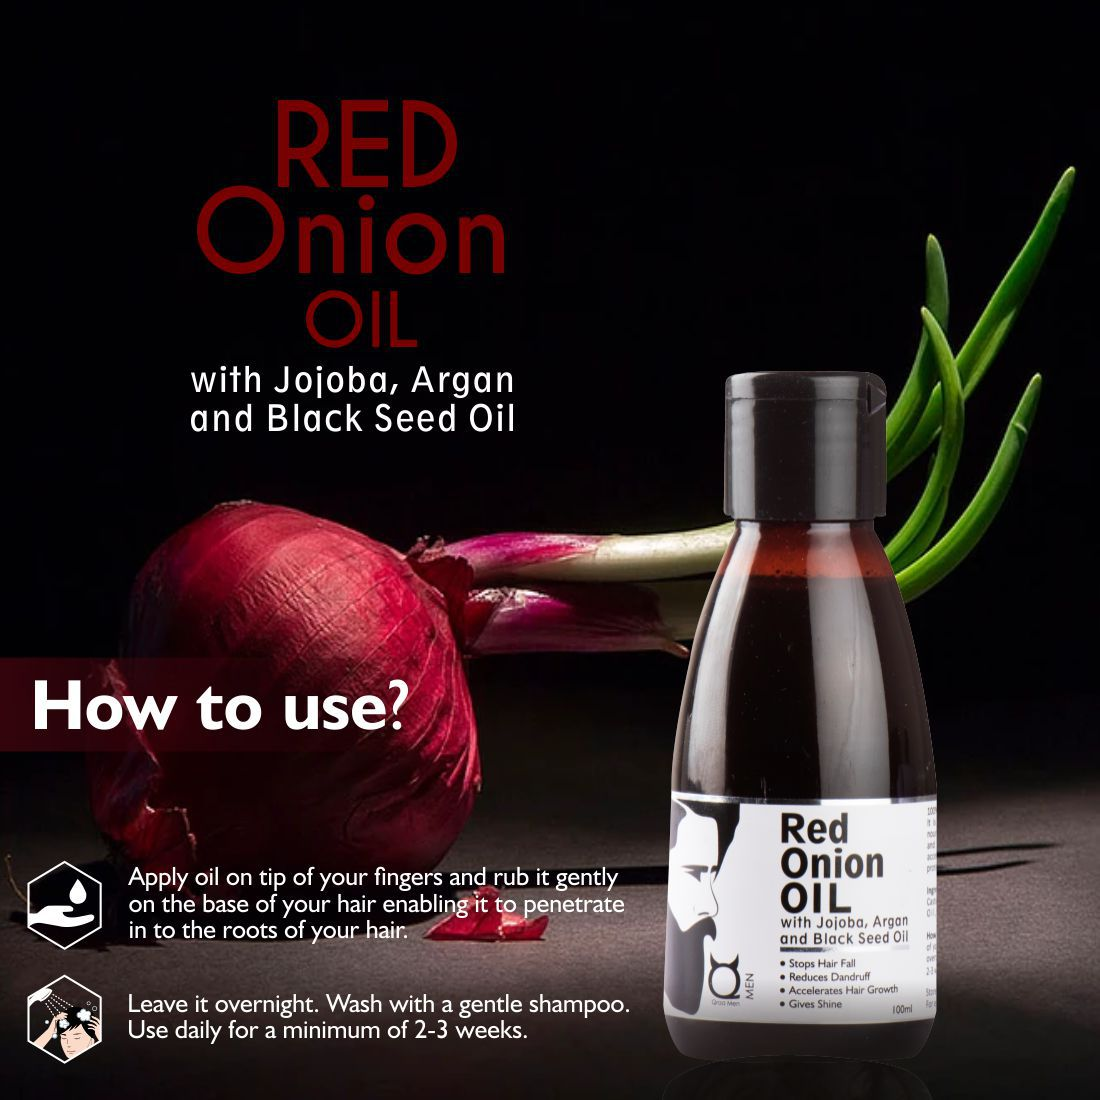 Red Onion Oil for Hair Regrowth